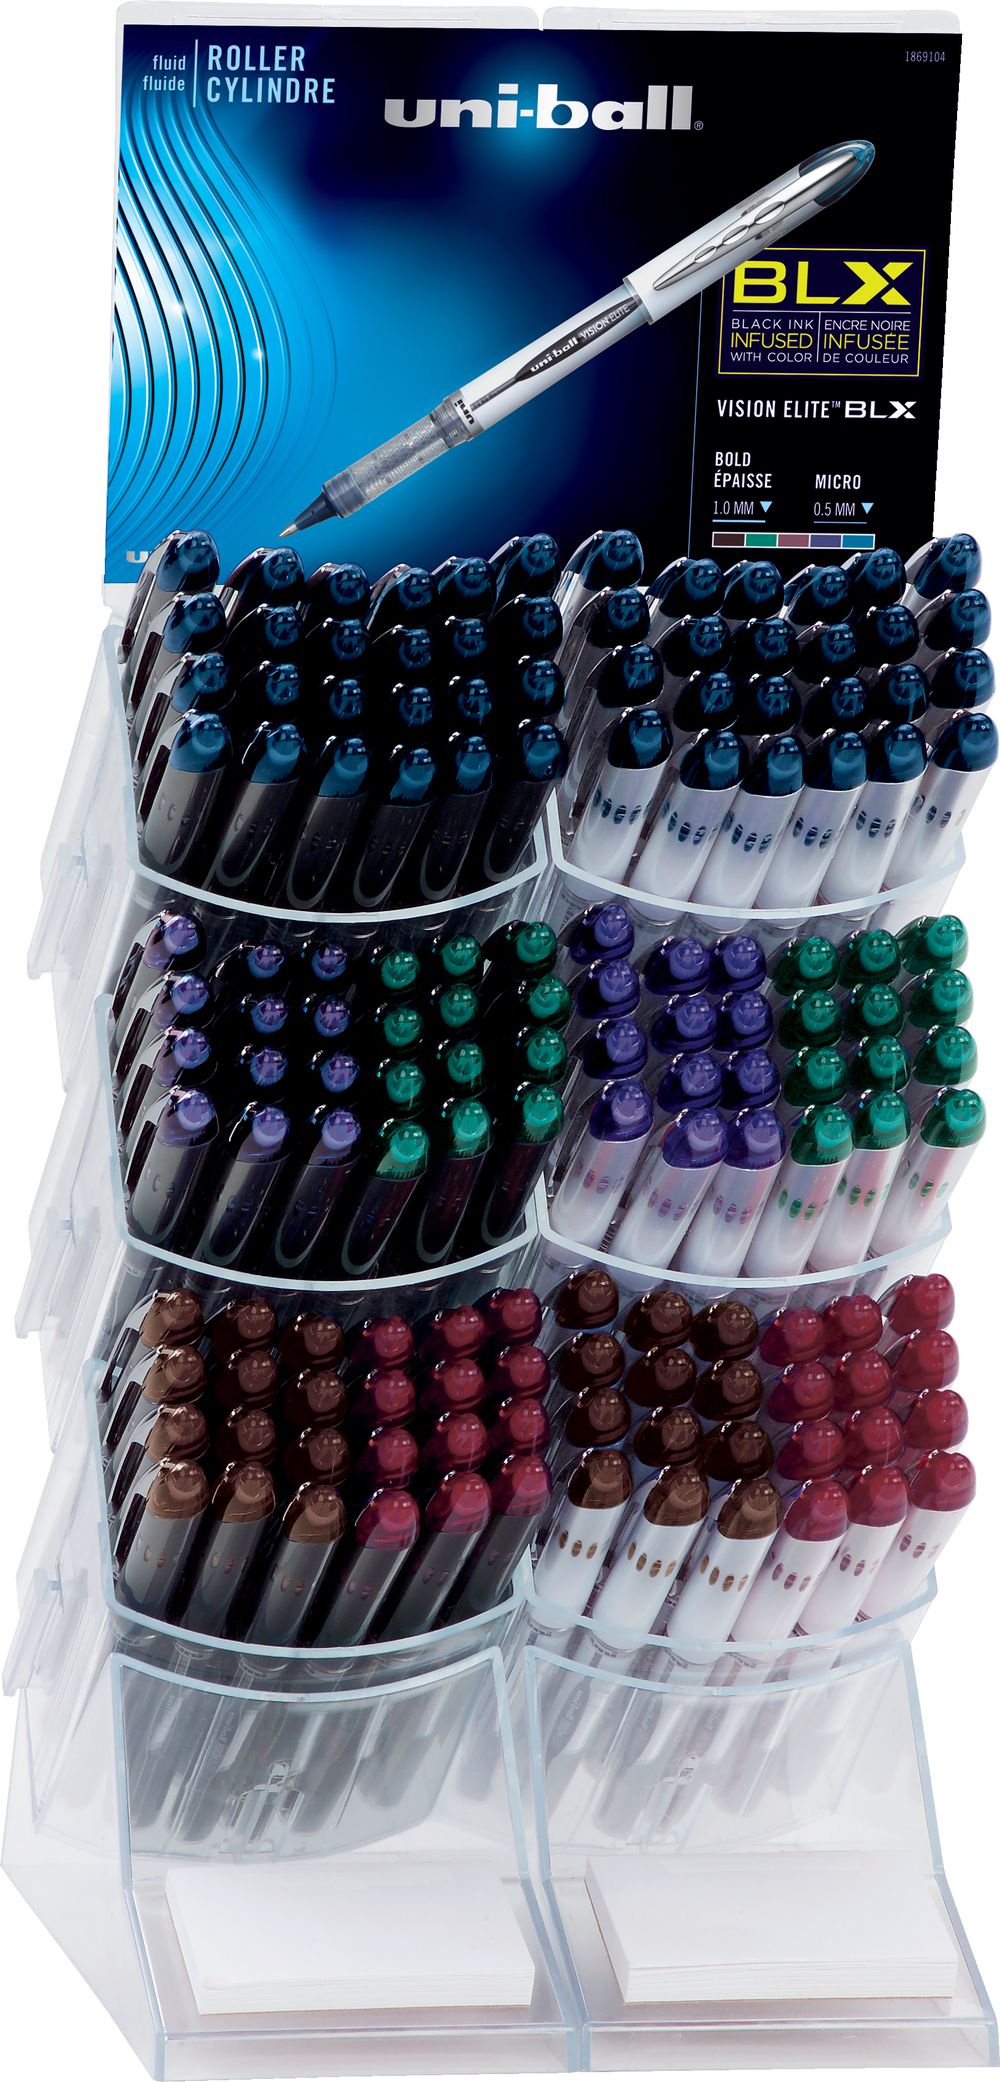 Uniball Vision Elite Display of 144 Pens